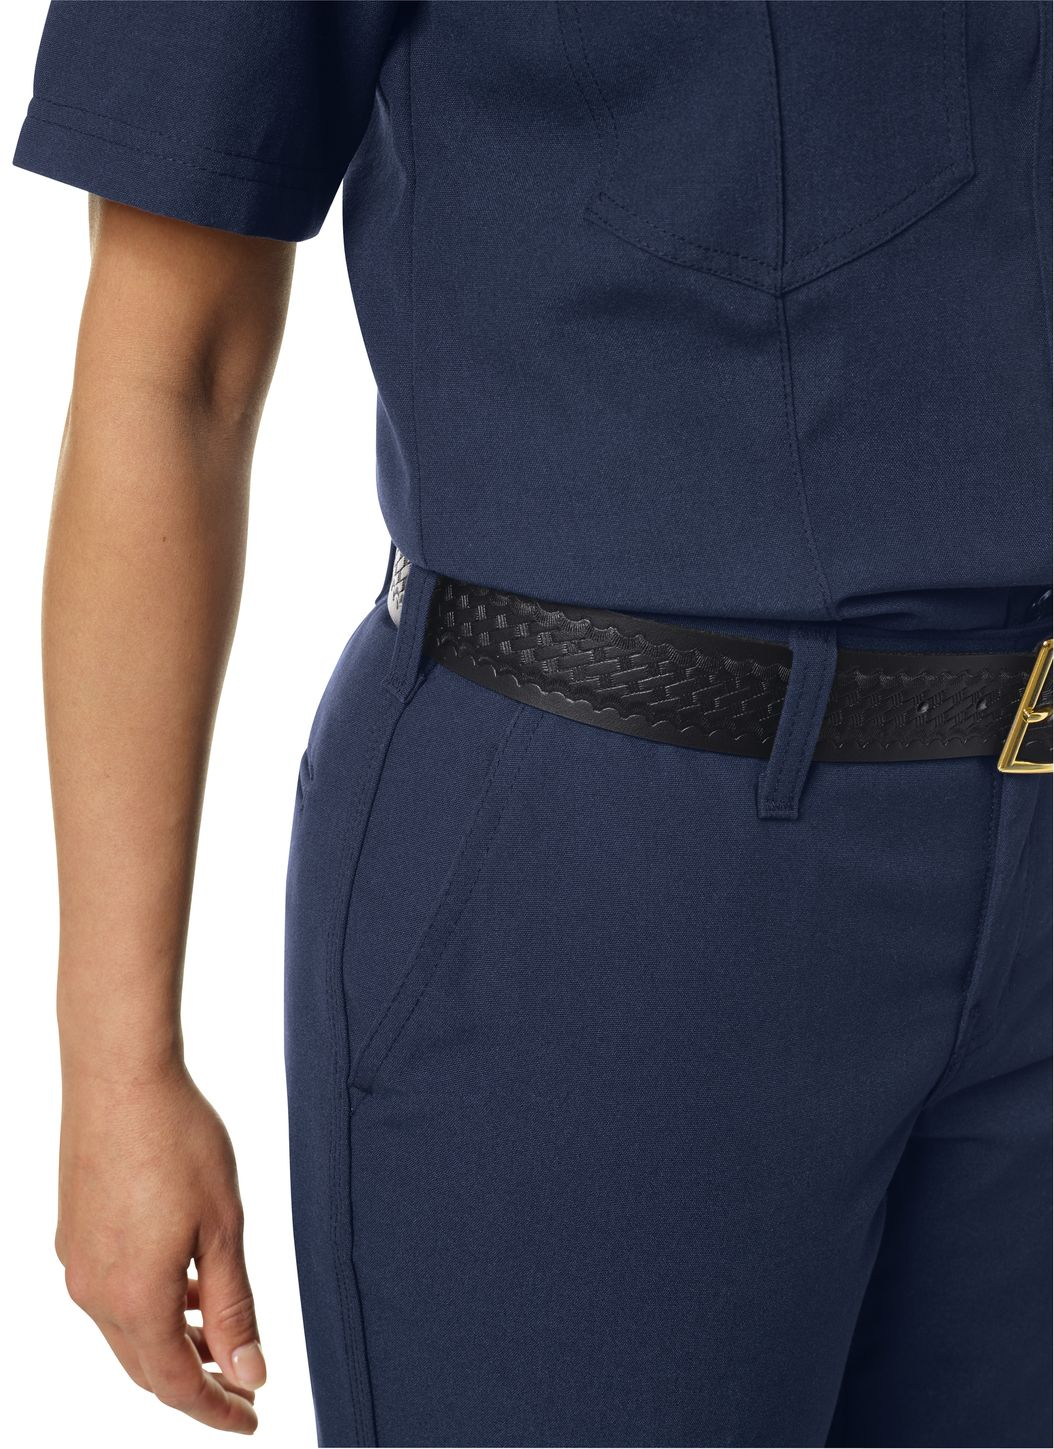 workrite-fr-women-s-pants-fp51-classic-firefighter-navy-example.jpg